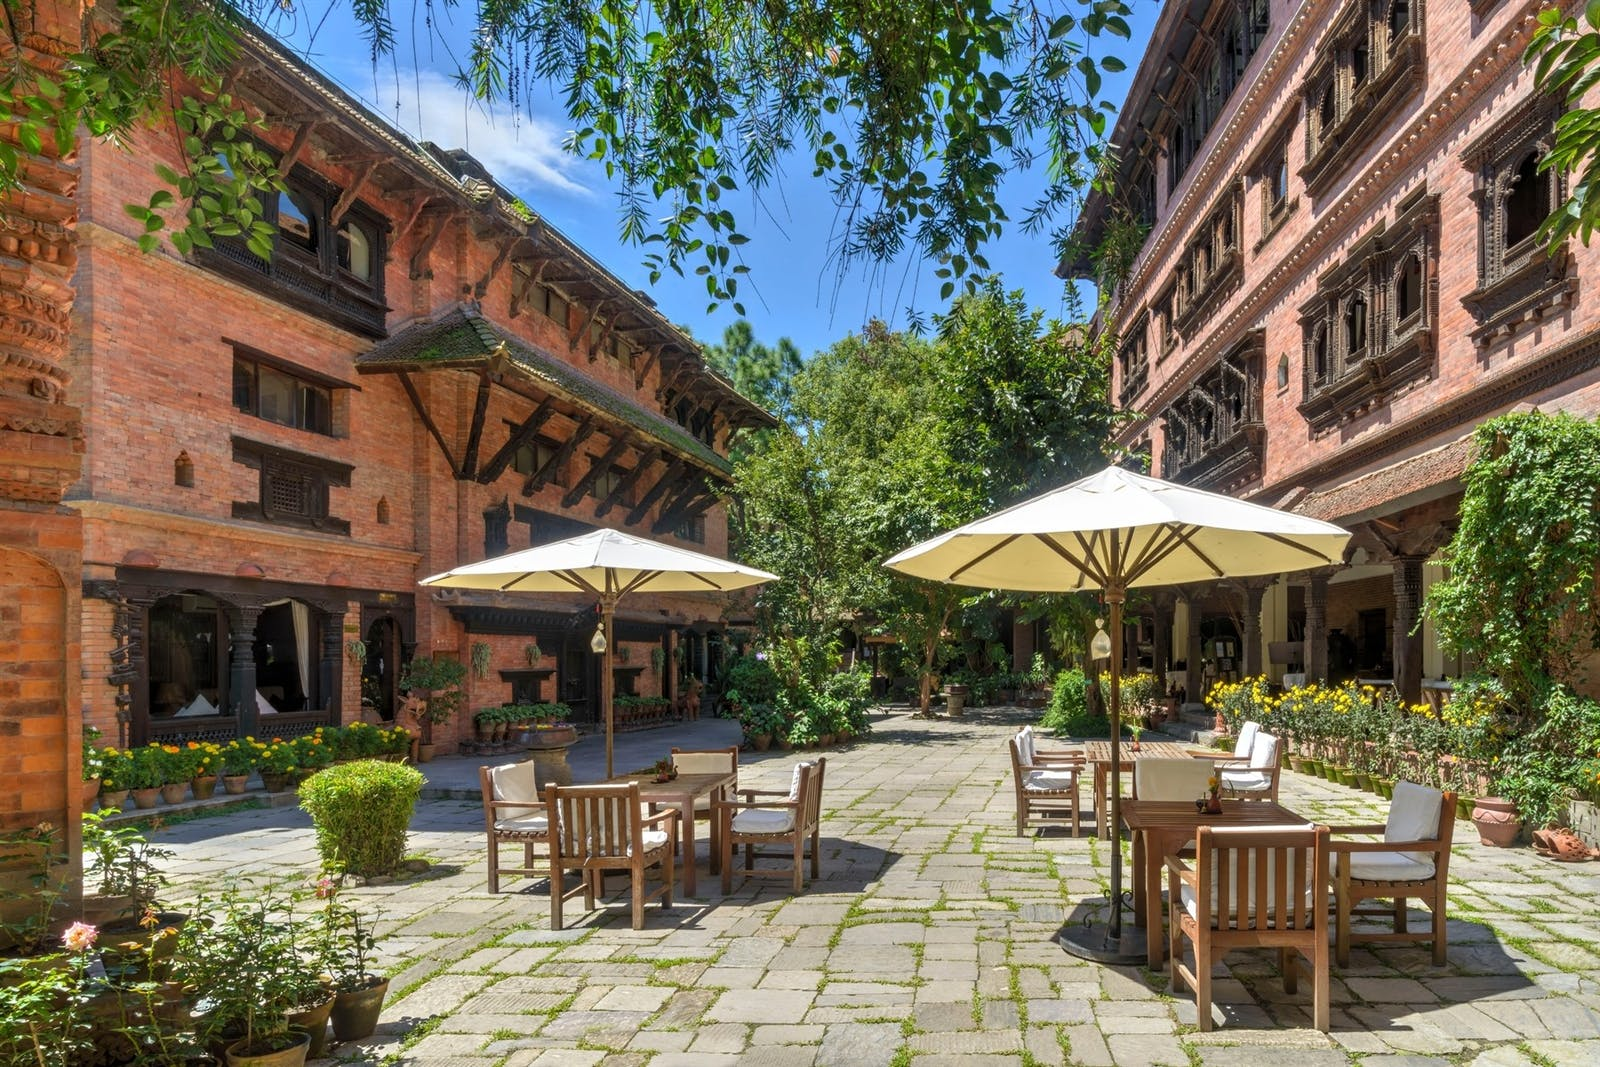 courtyard at dwarikas hotel